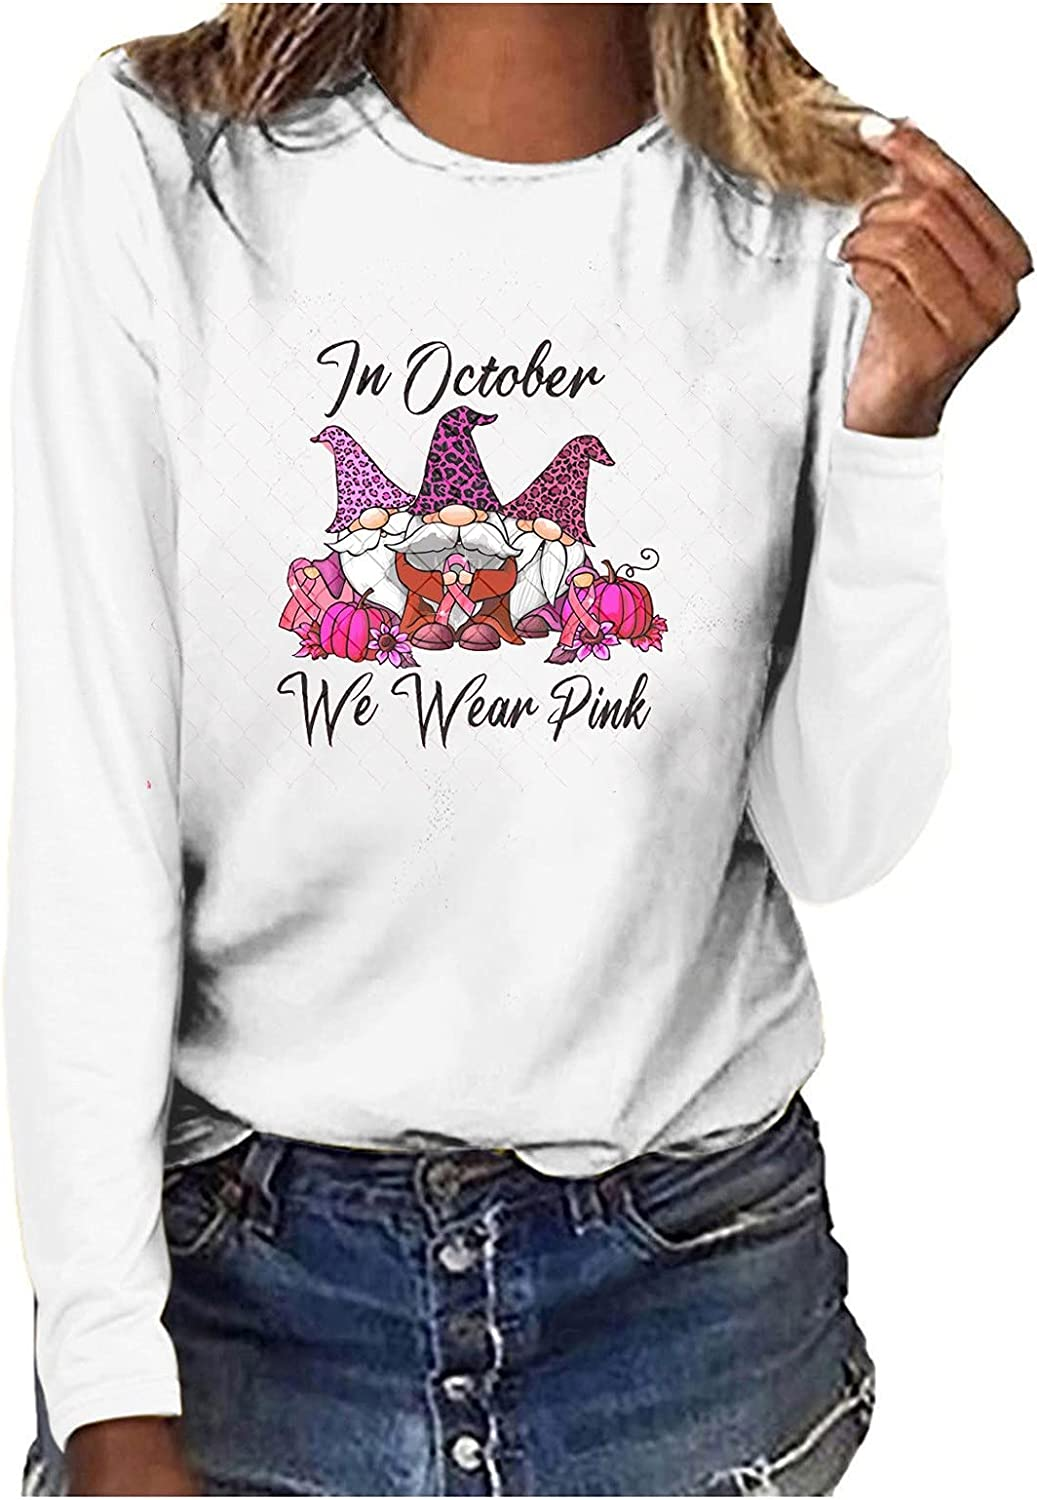 5665 Y2k Long Sleeve Tops for Women Fall Casual Crewneck Shirt Cute Funny Graphic Tee Loose Fit Blouses Workout Sweatshirt